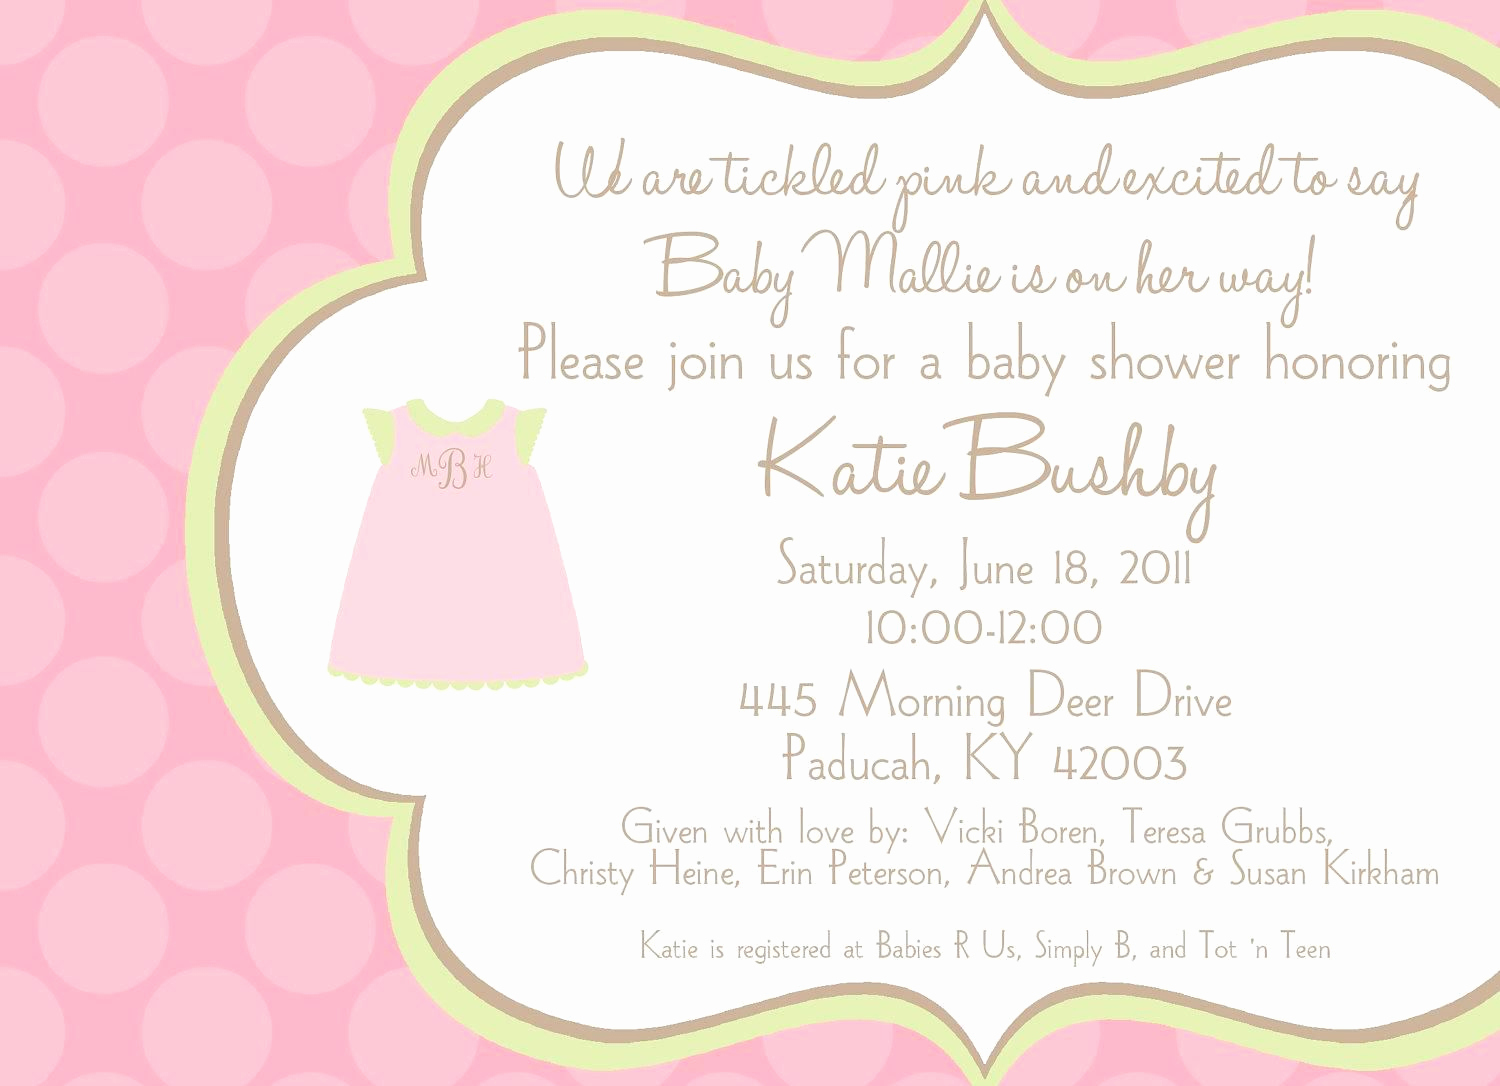 Baby Shower Invitation Poems Inspirational Housewarming Invitations Cards Housewarming Invitation